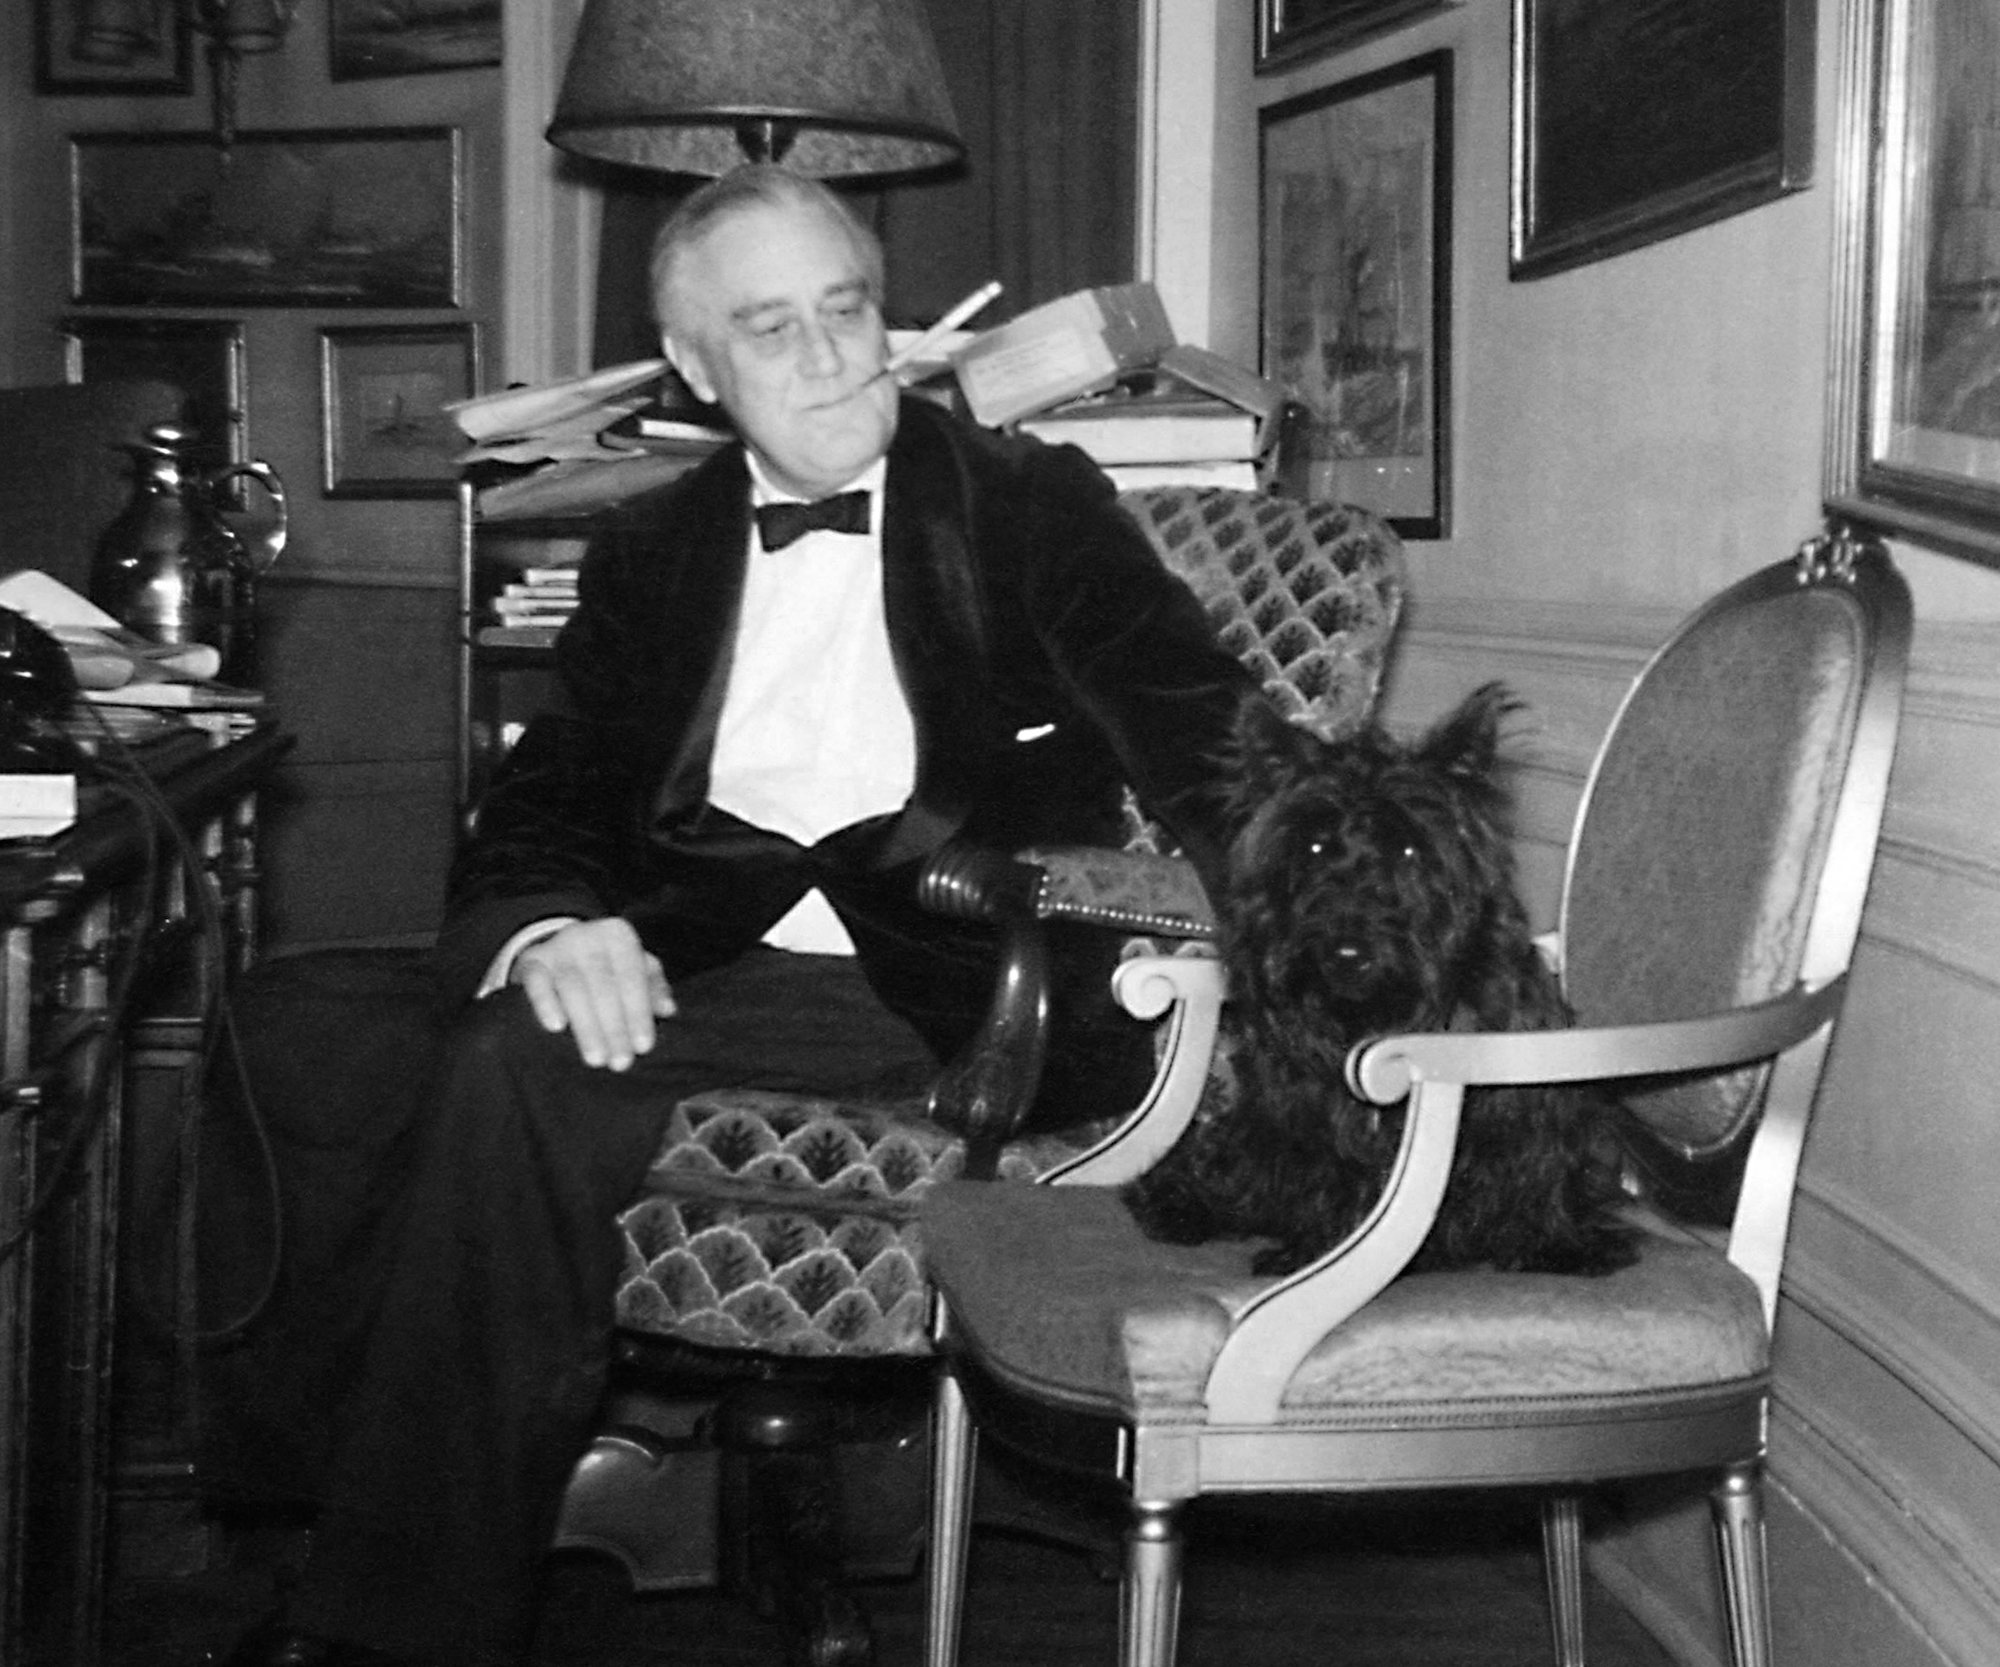 FDR and Fala in the White House Study December of 1941. Photograph taken by an employee of the Executive Office of the President of the United States.